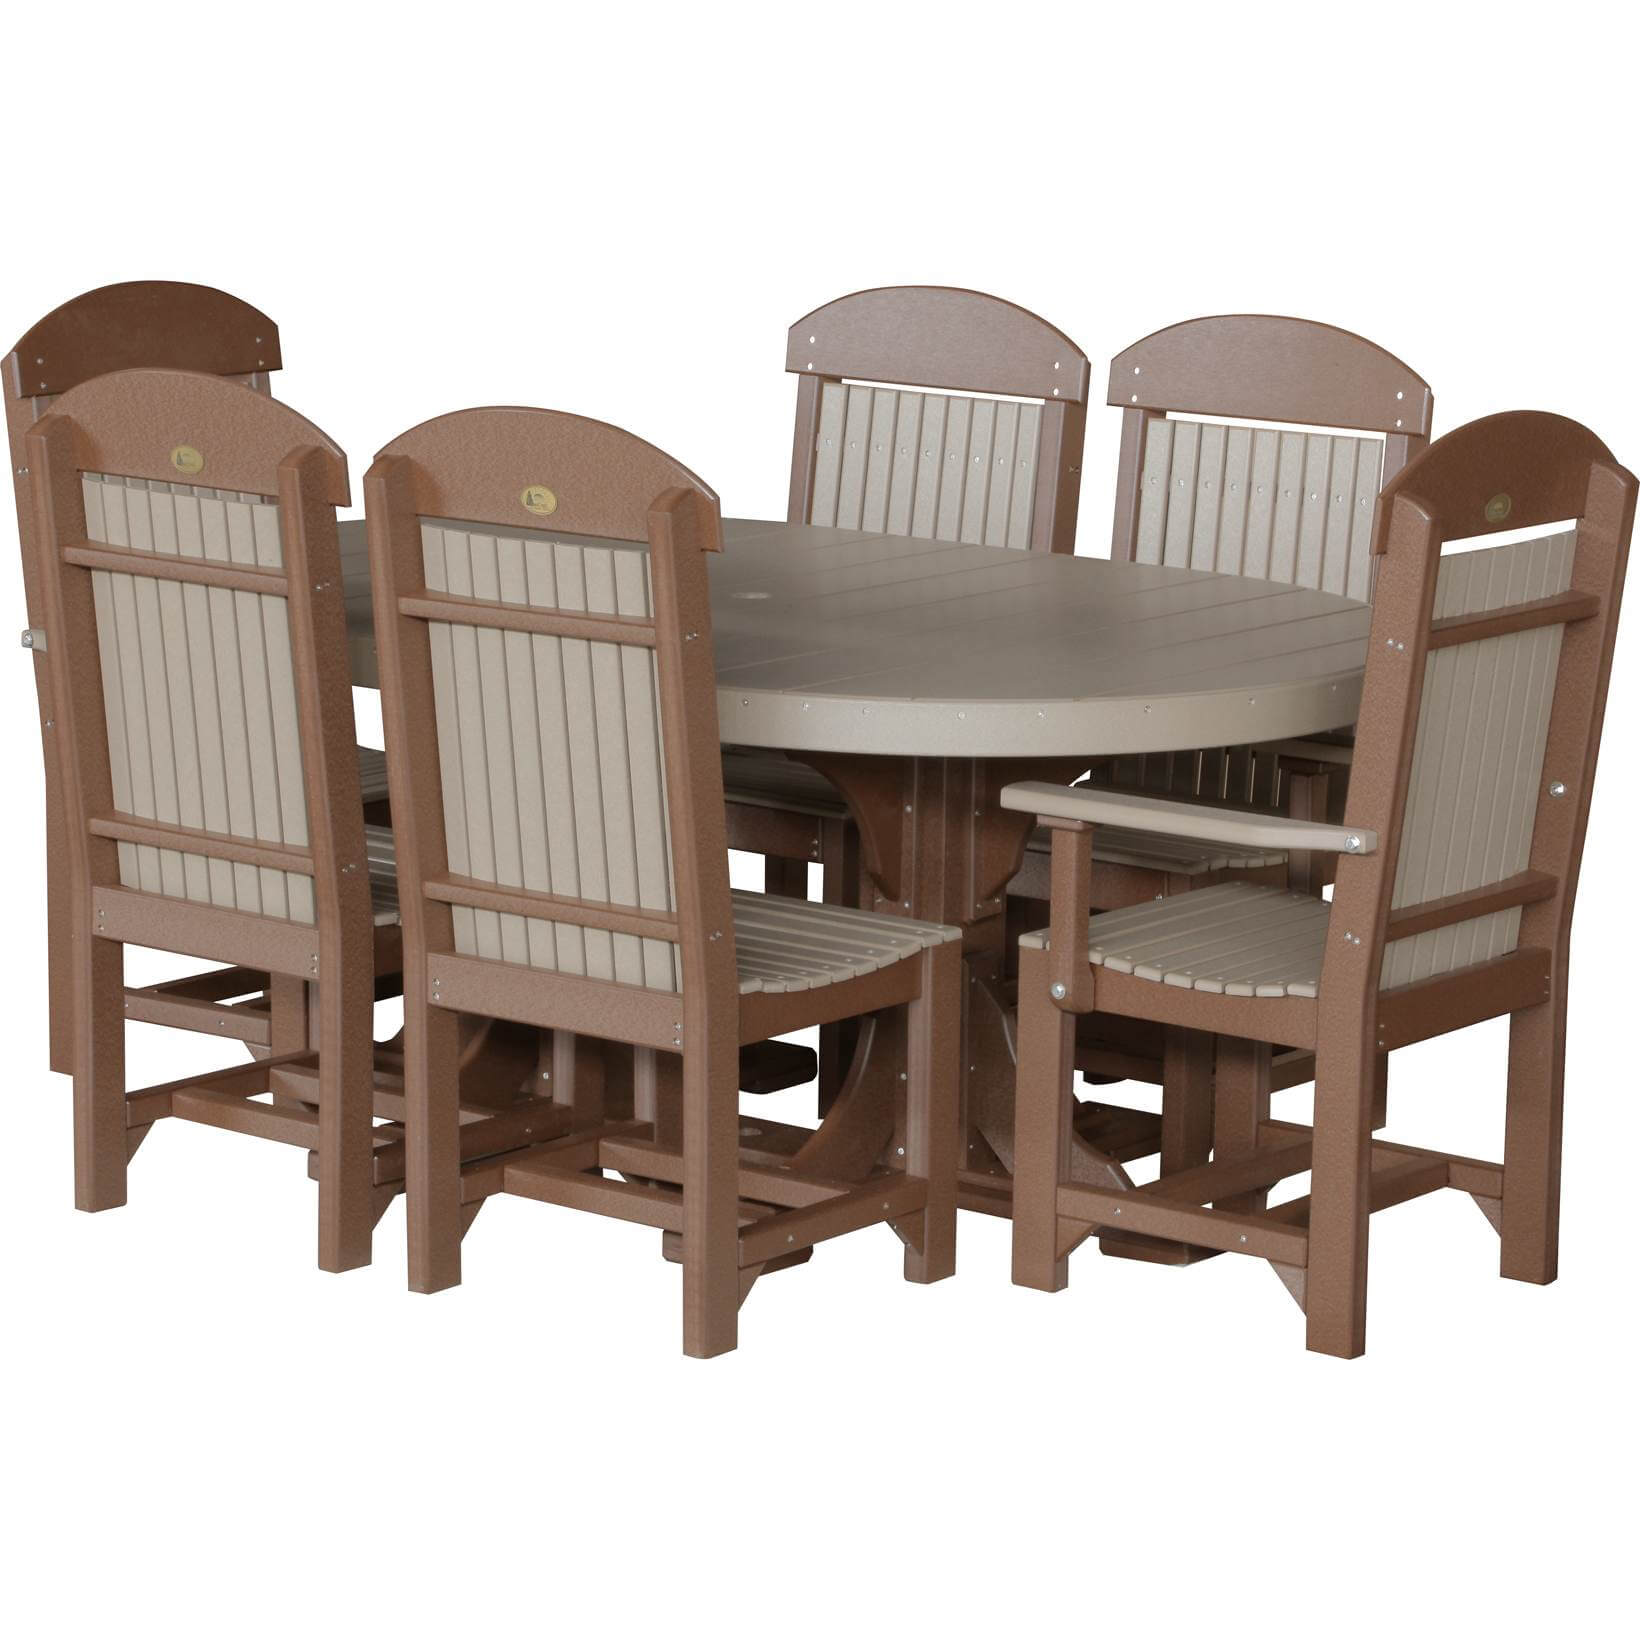 LuxCraft Poly 4x6 Oval Table Set #2 Weatherwood U0026 Chestnut Brown Dining  Height